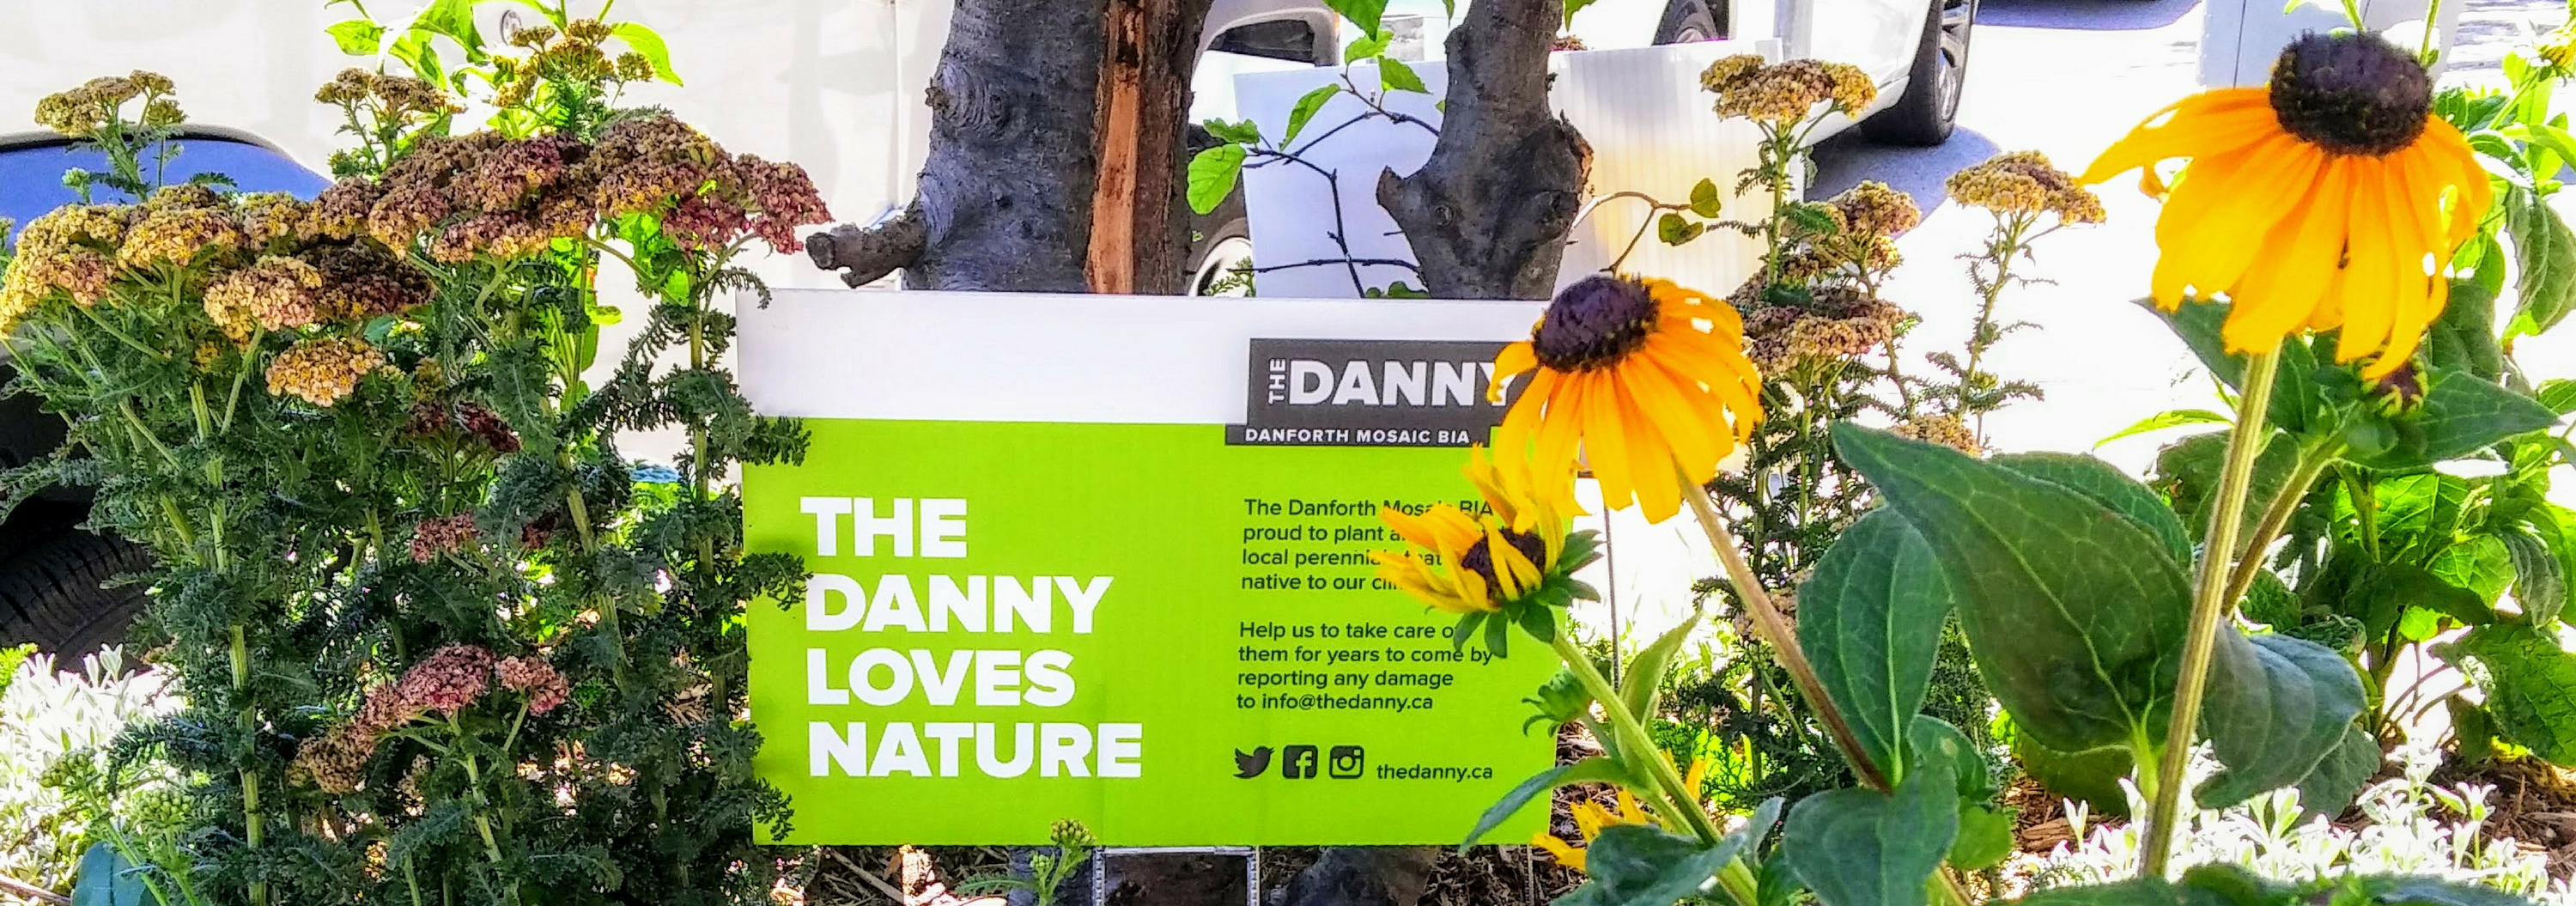 The Danny Loves Nature - Native Plants - Bee City - Danforth Mosaic Business Improvement Area, The Danny BIA, Toronto, Danforth East, Business, You'll Love What You Find Here